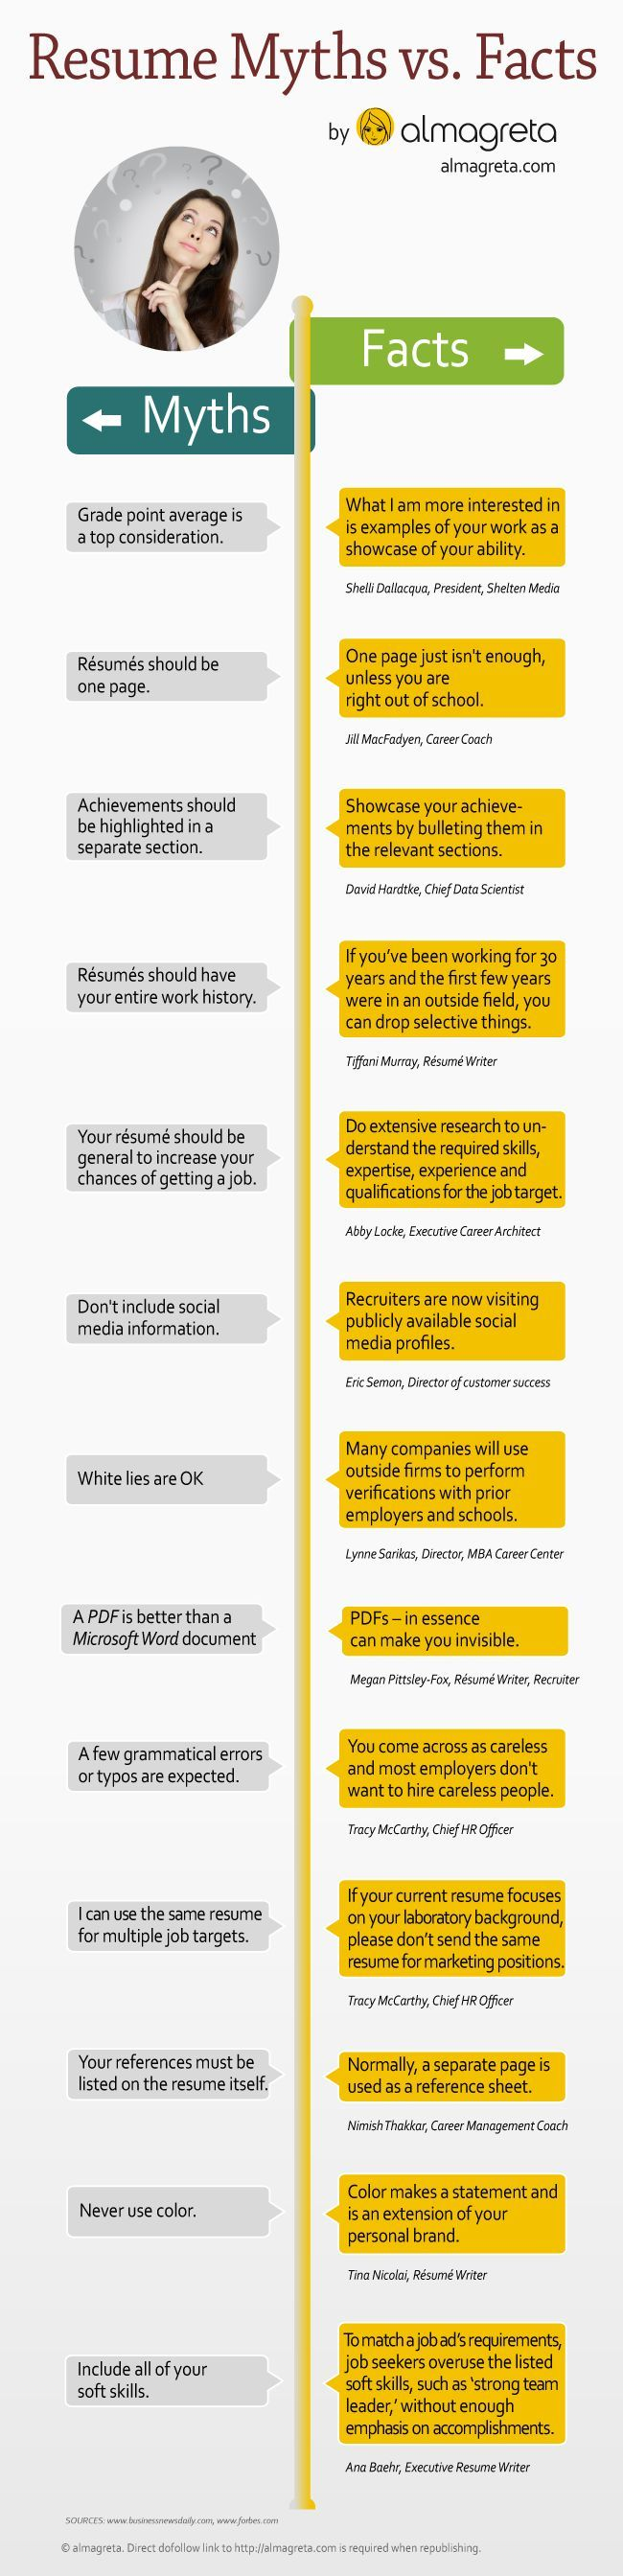 resume myths busted in this infographic tips from resume experts to get you hired - Tips On Resumes